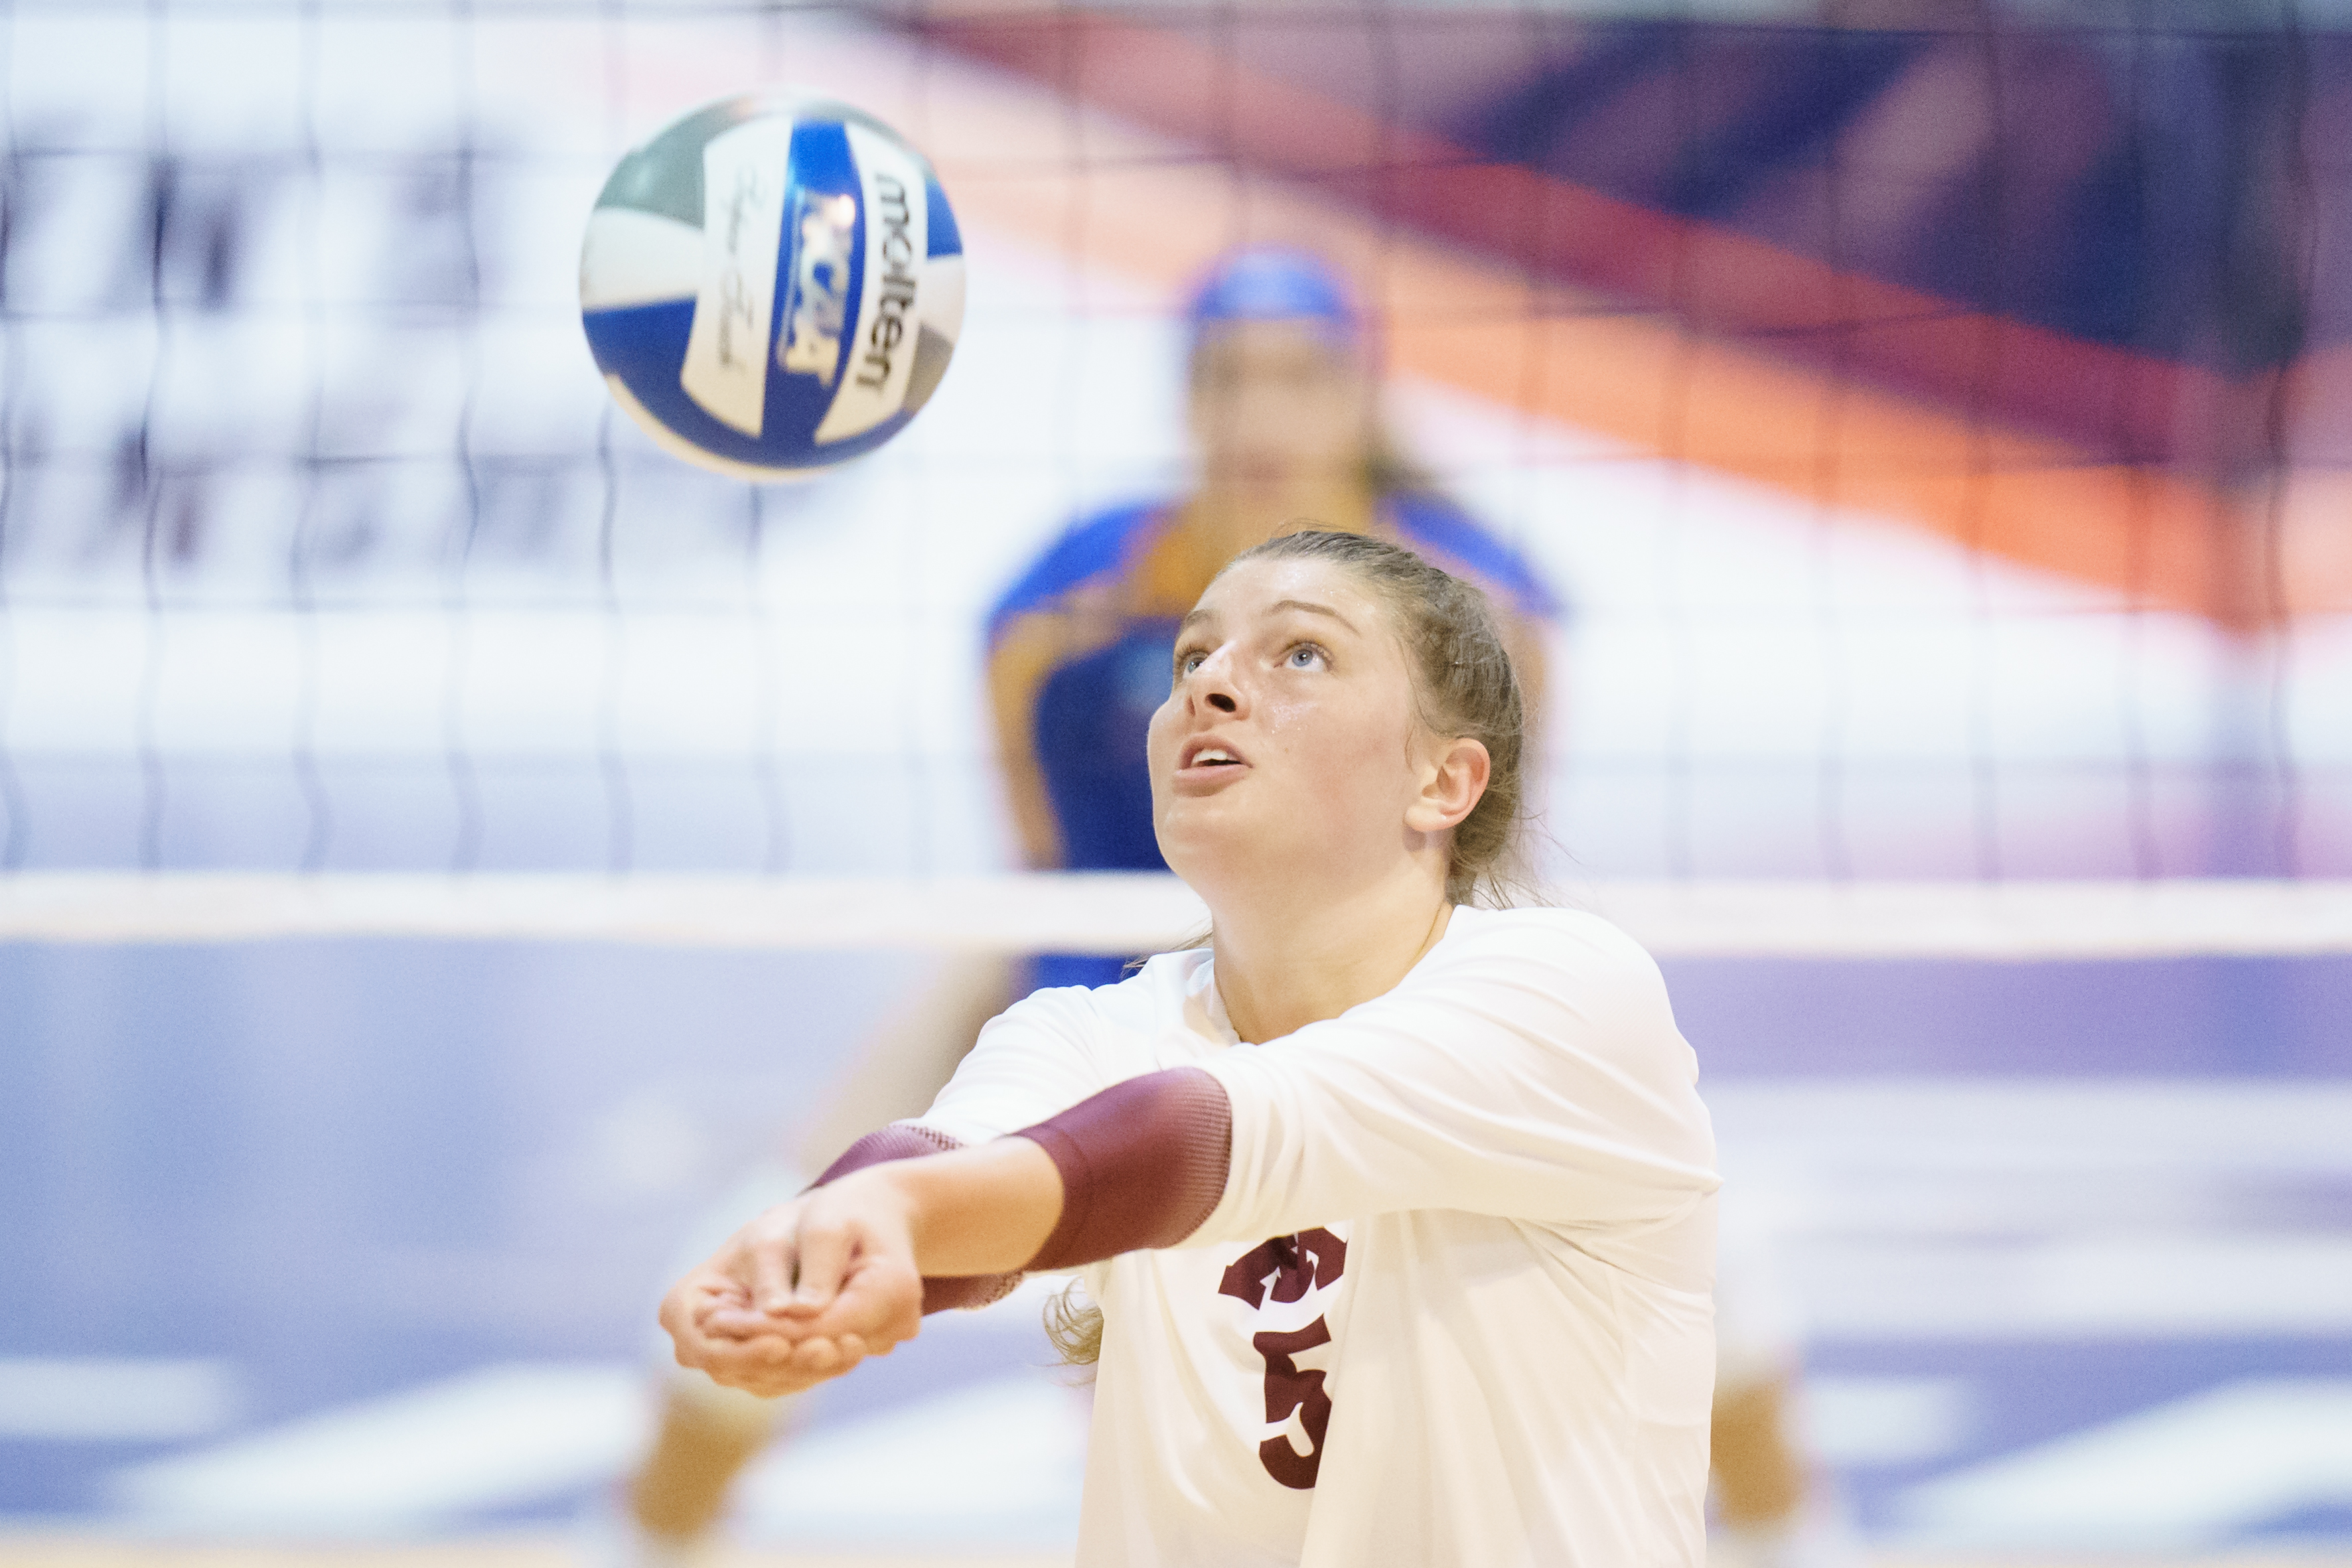 Gophers setter Melani Shaffmaster put a ball in play against Pittsburgh on Sunday.